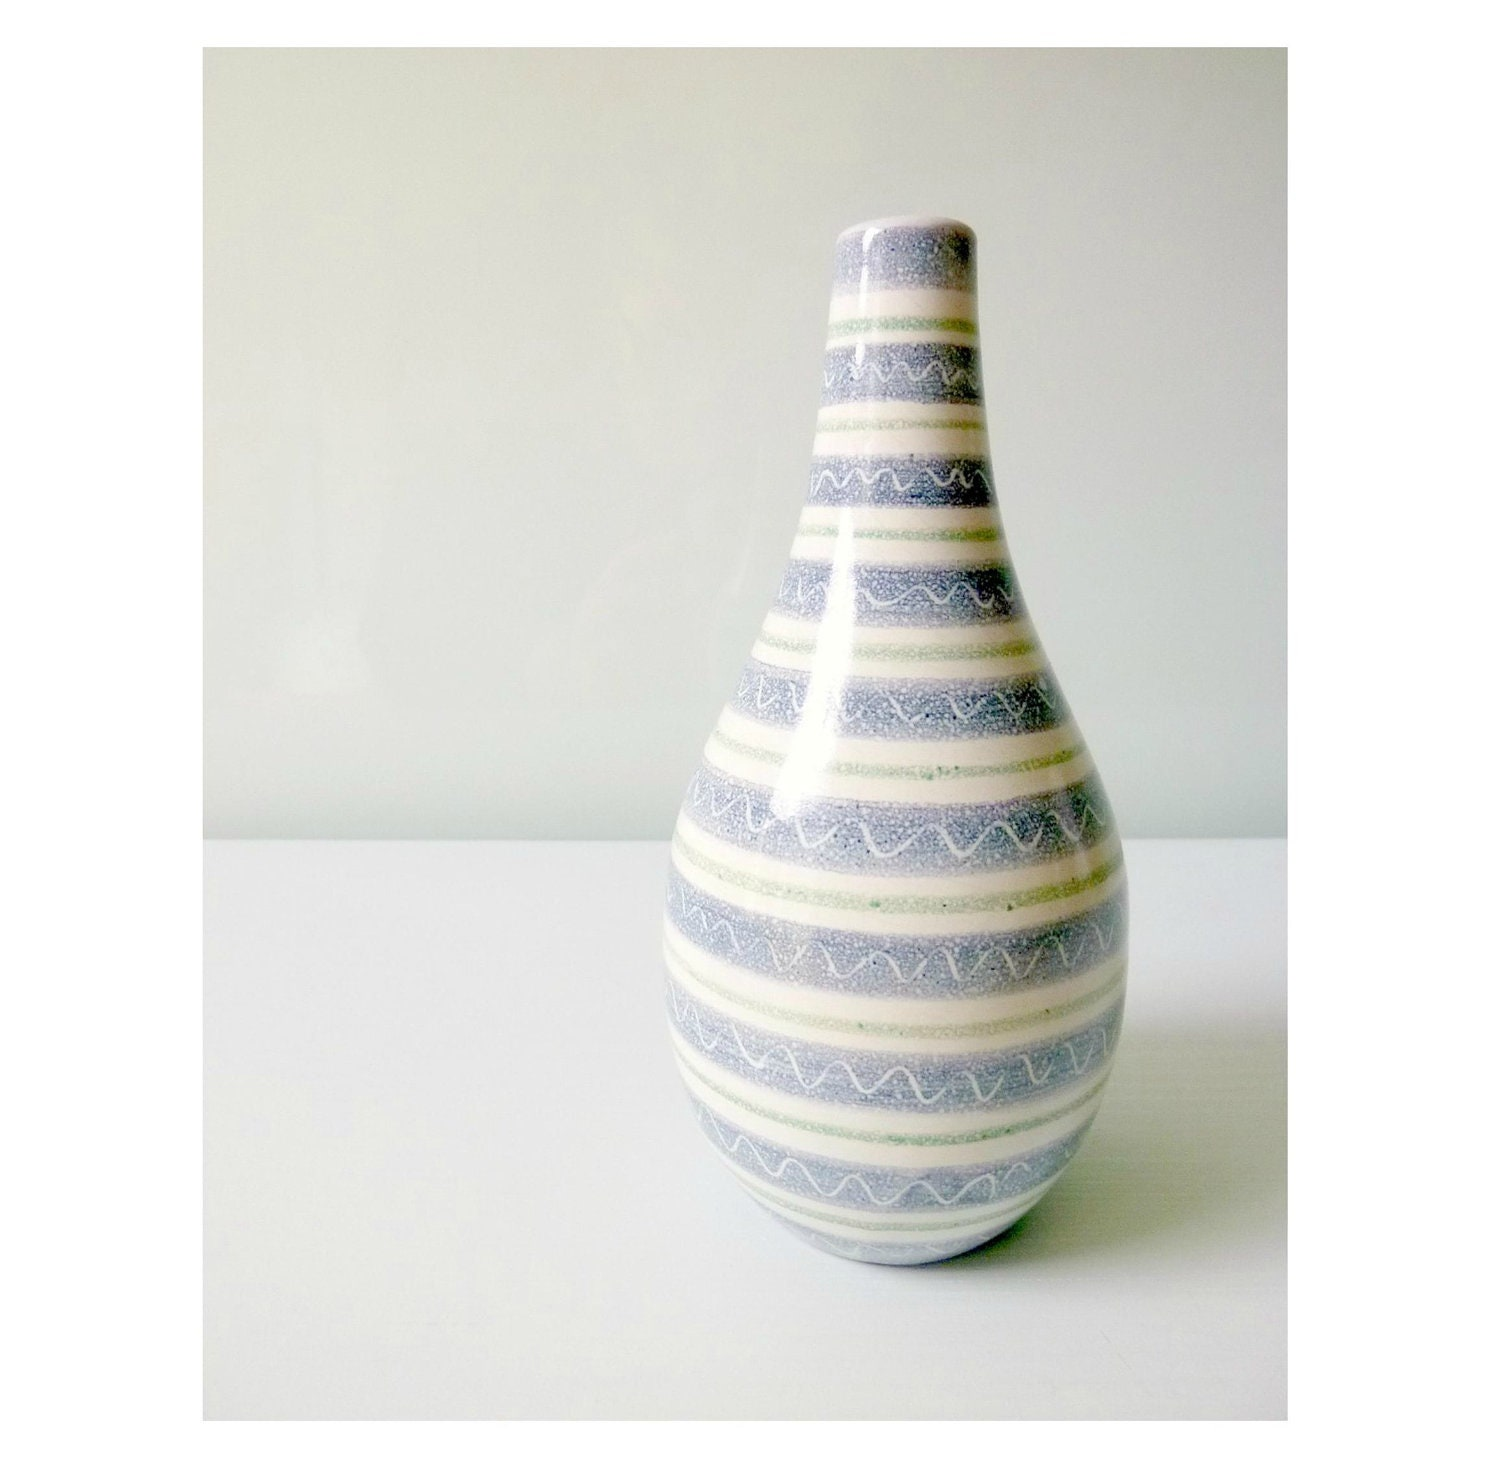 Mid Century Modern Laholm Vase - Studio Pottery, Sweden - Nautical, Stripes - Mad Men, 1960s Home Decor, Vintage Home, Summer, Eames Panton - mungoandmidge